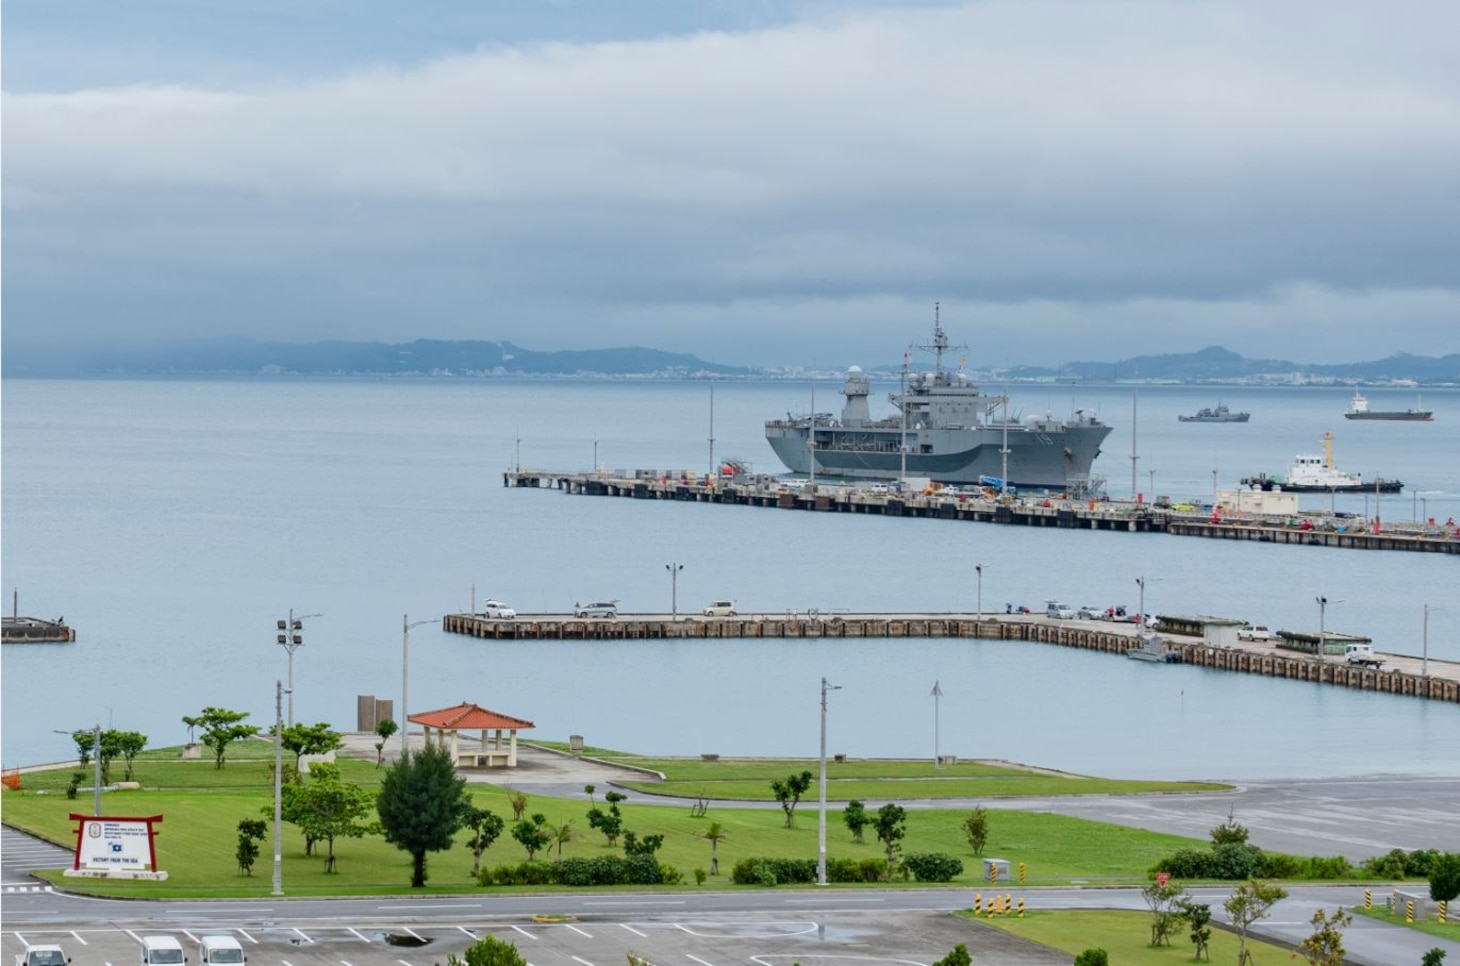 OKINAWA, Japan (May 24, 2020) - U.S. 7th Fleet flagship USS Blue Ridge (LCC 19) arrives in White Beach Naval Facility in Okinawa, Japan. Blue Ridge is the oldest operational ship in the Navy and, as 7th Fleet command ship, actively works to foster relationships with allies and partners in the Indo-Pacific region.